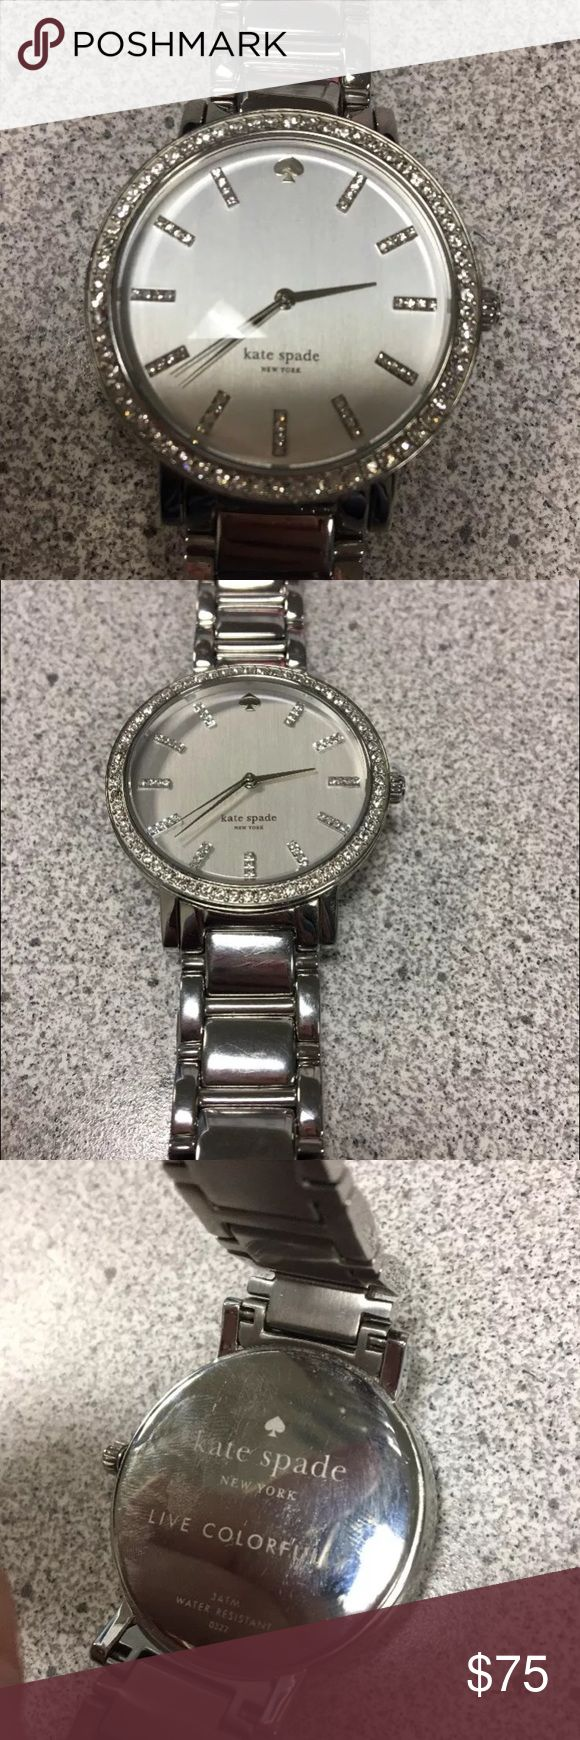 Kate Spade Gramercy Watch. Kate Spade Gramercy Watch. Silver tone with Rhinestones. Comes with extra links. Excellent condition-worn for a few months. Some scuffs from normal use as seen in pics. Needs new battery.  No box. kate spade Accessories Watches